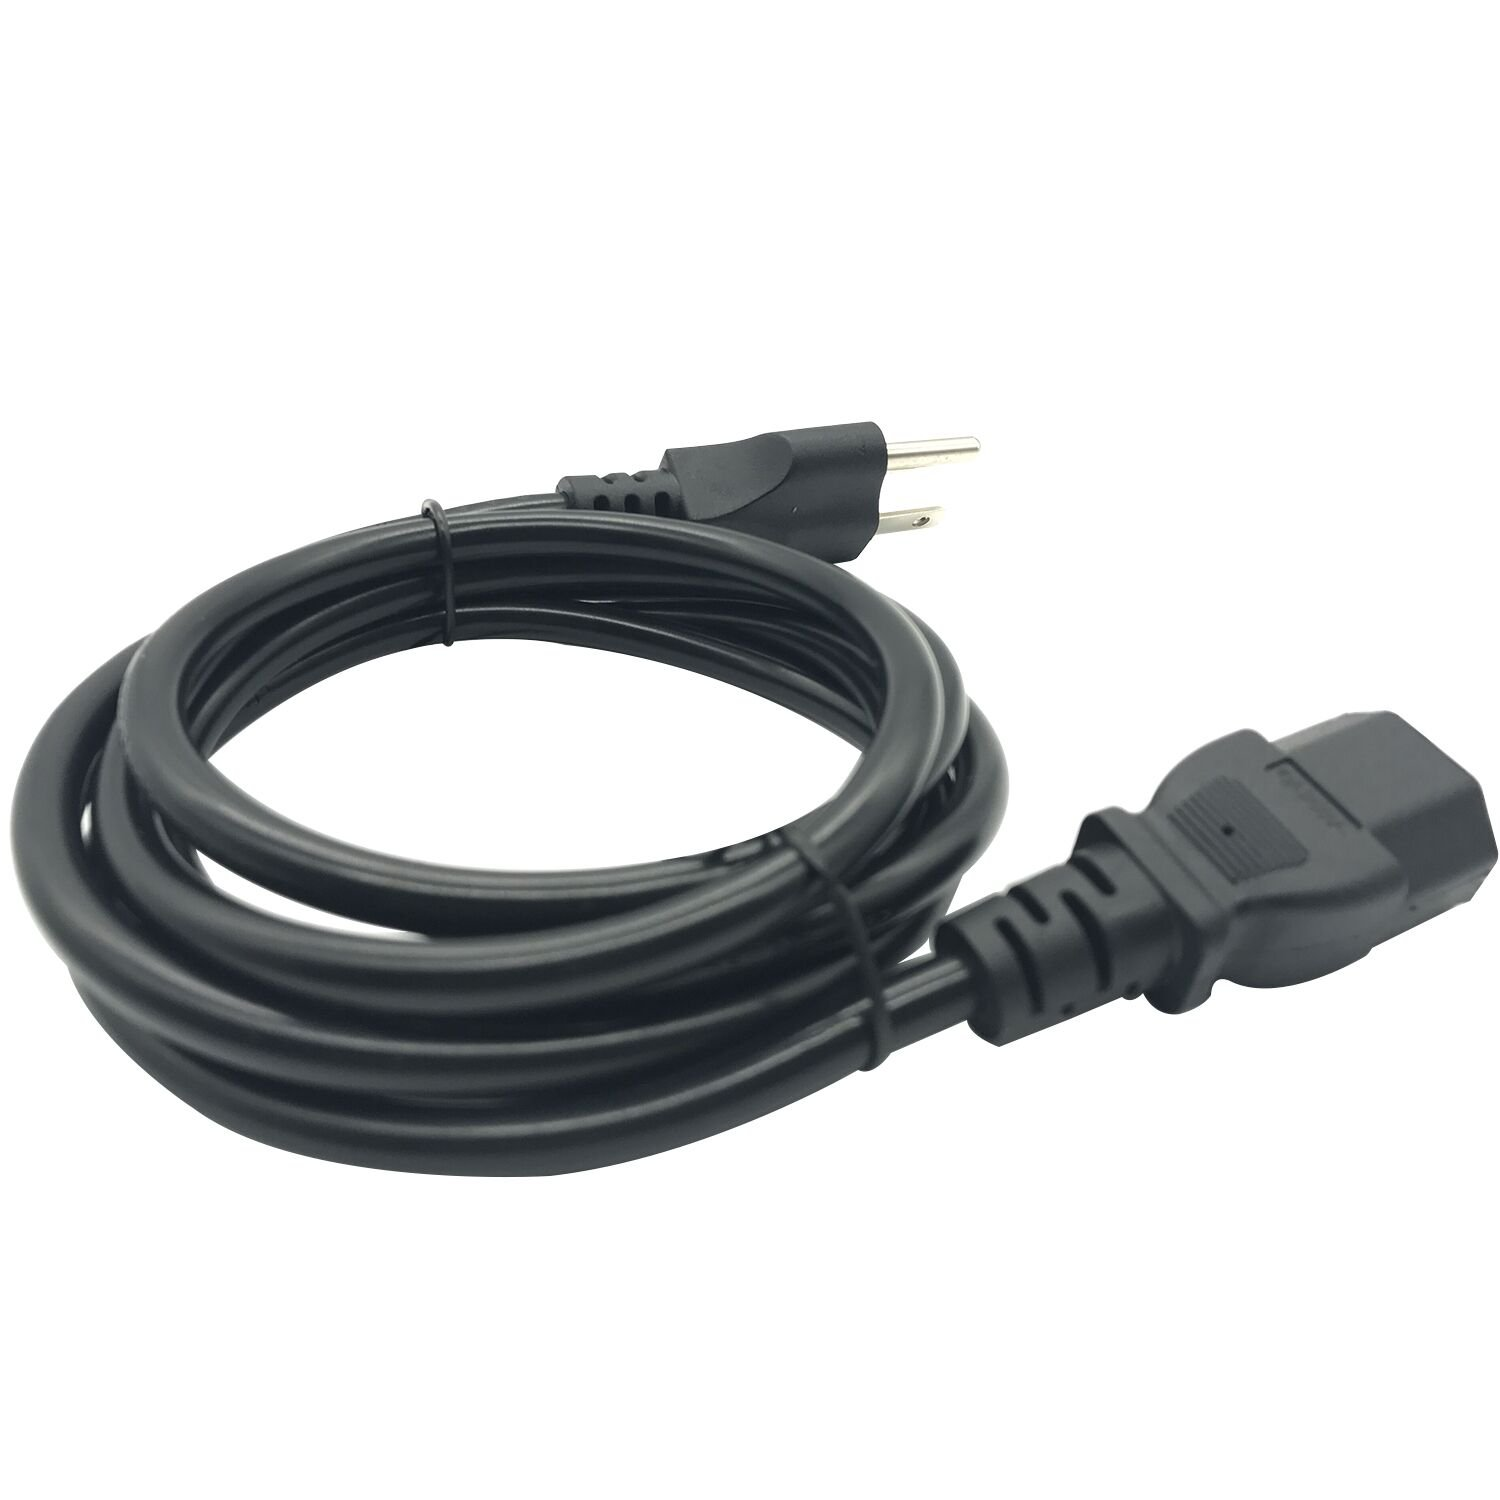 Apoi Computer Cable Cord[2 Pack] 6ft 18 AWG Universal Power Cord NEMA 5-15P to IEC320 C13 [UL Listed] 1.8m – Black by Apoi (Image #3)